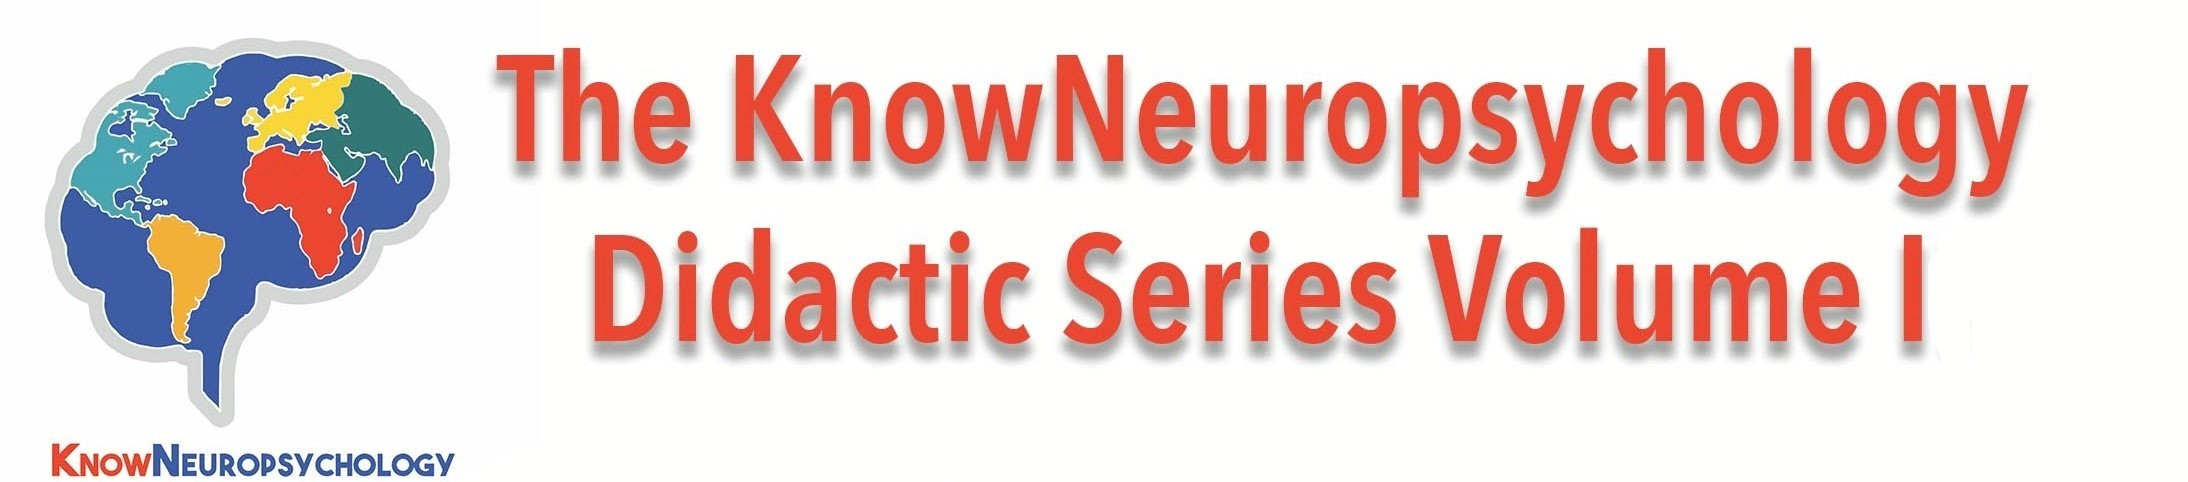 KnowNeuropsychology Didactic Series - Volume 1